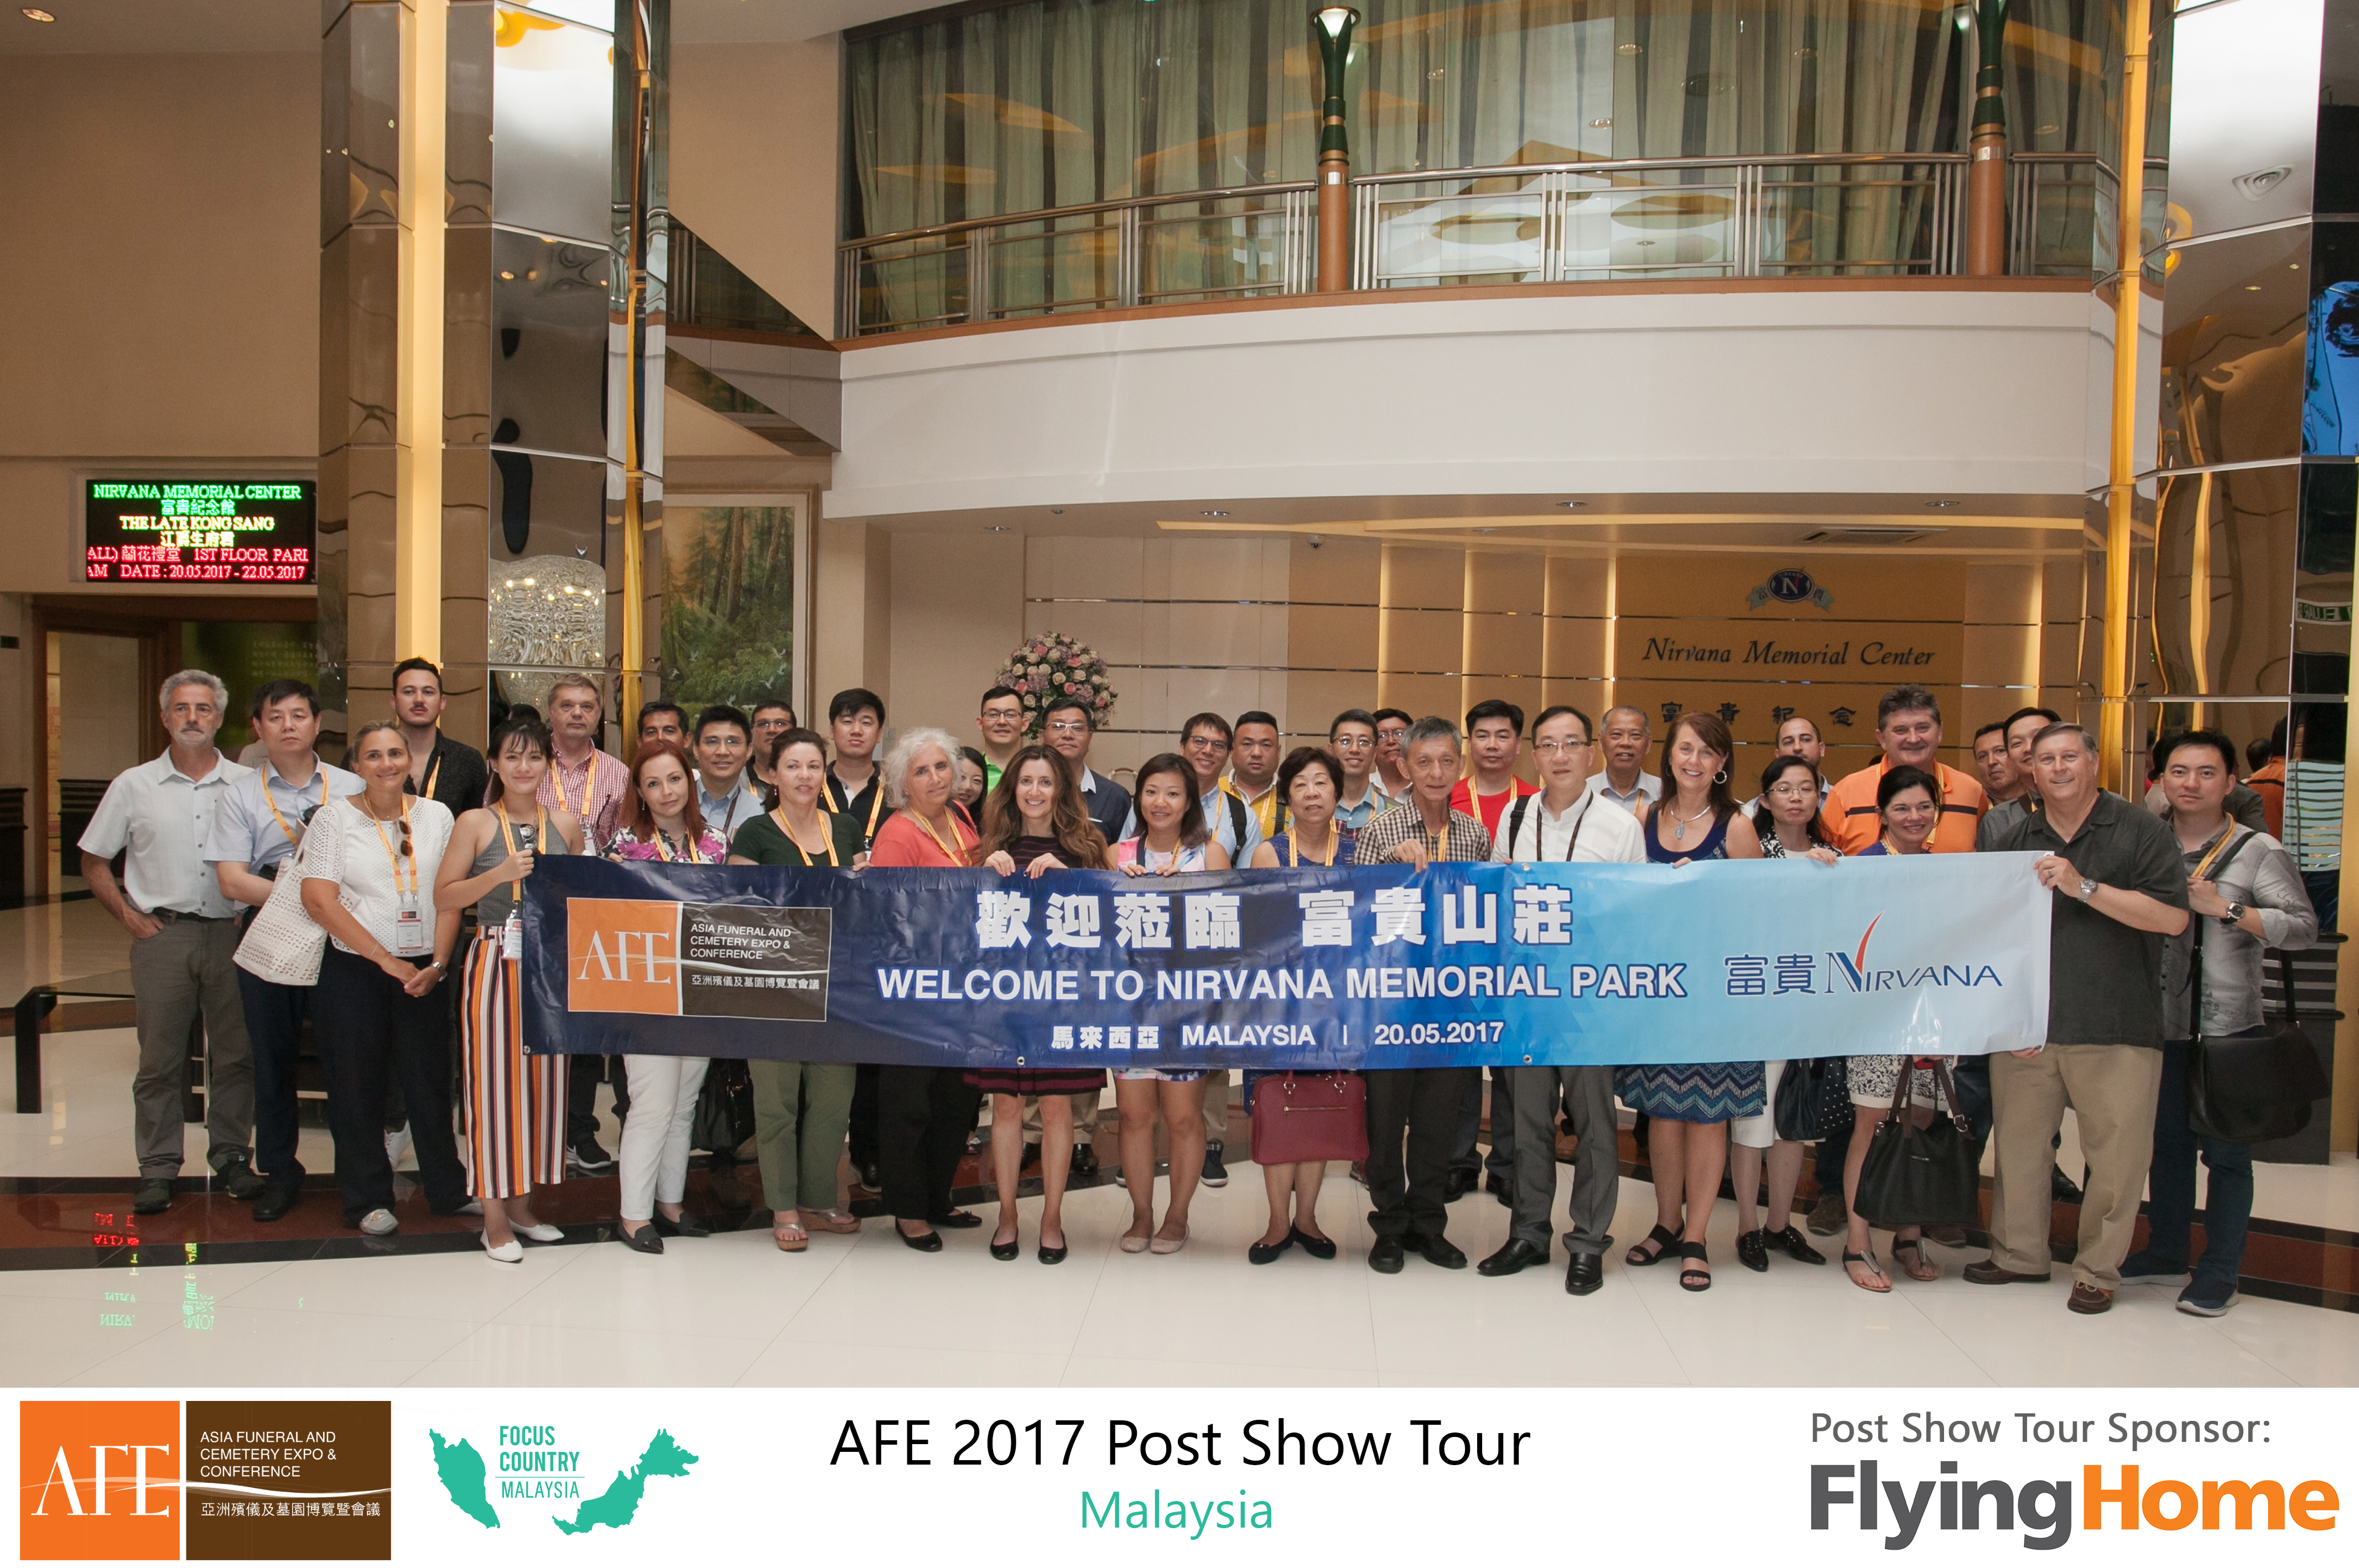 AFE Post Show Tour 2017 Day 2 - 26